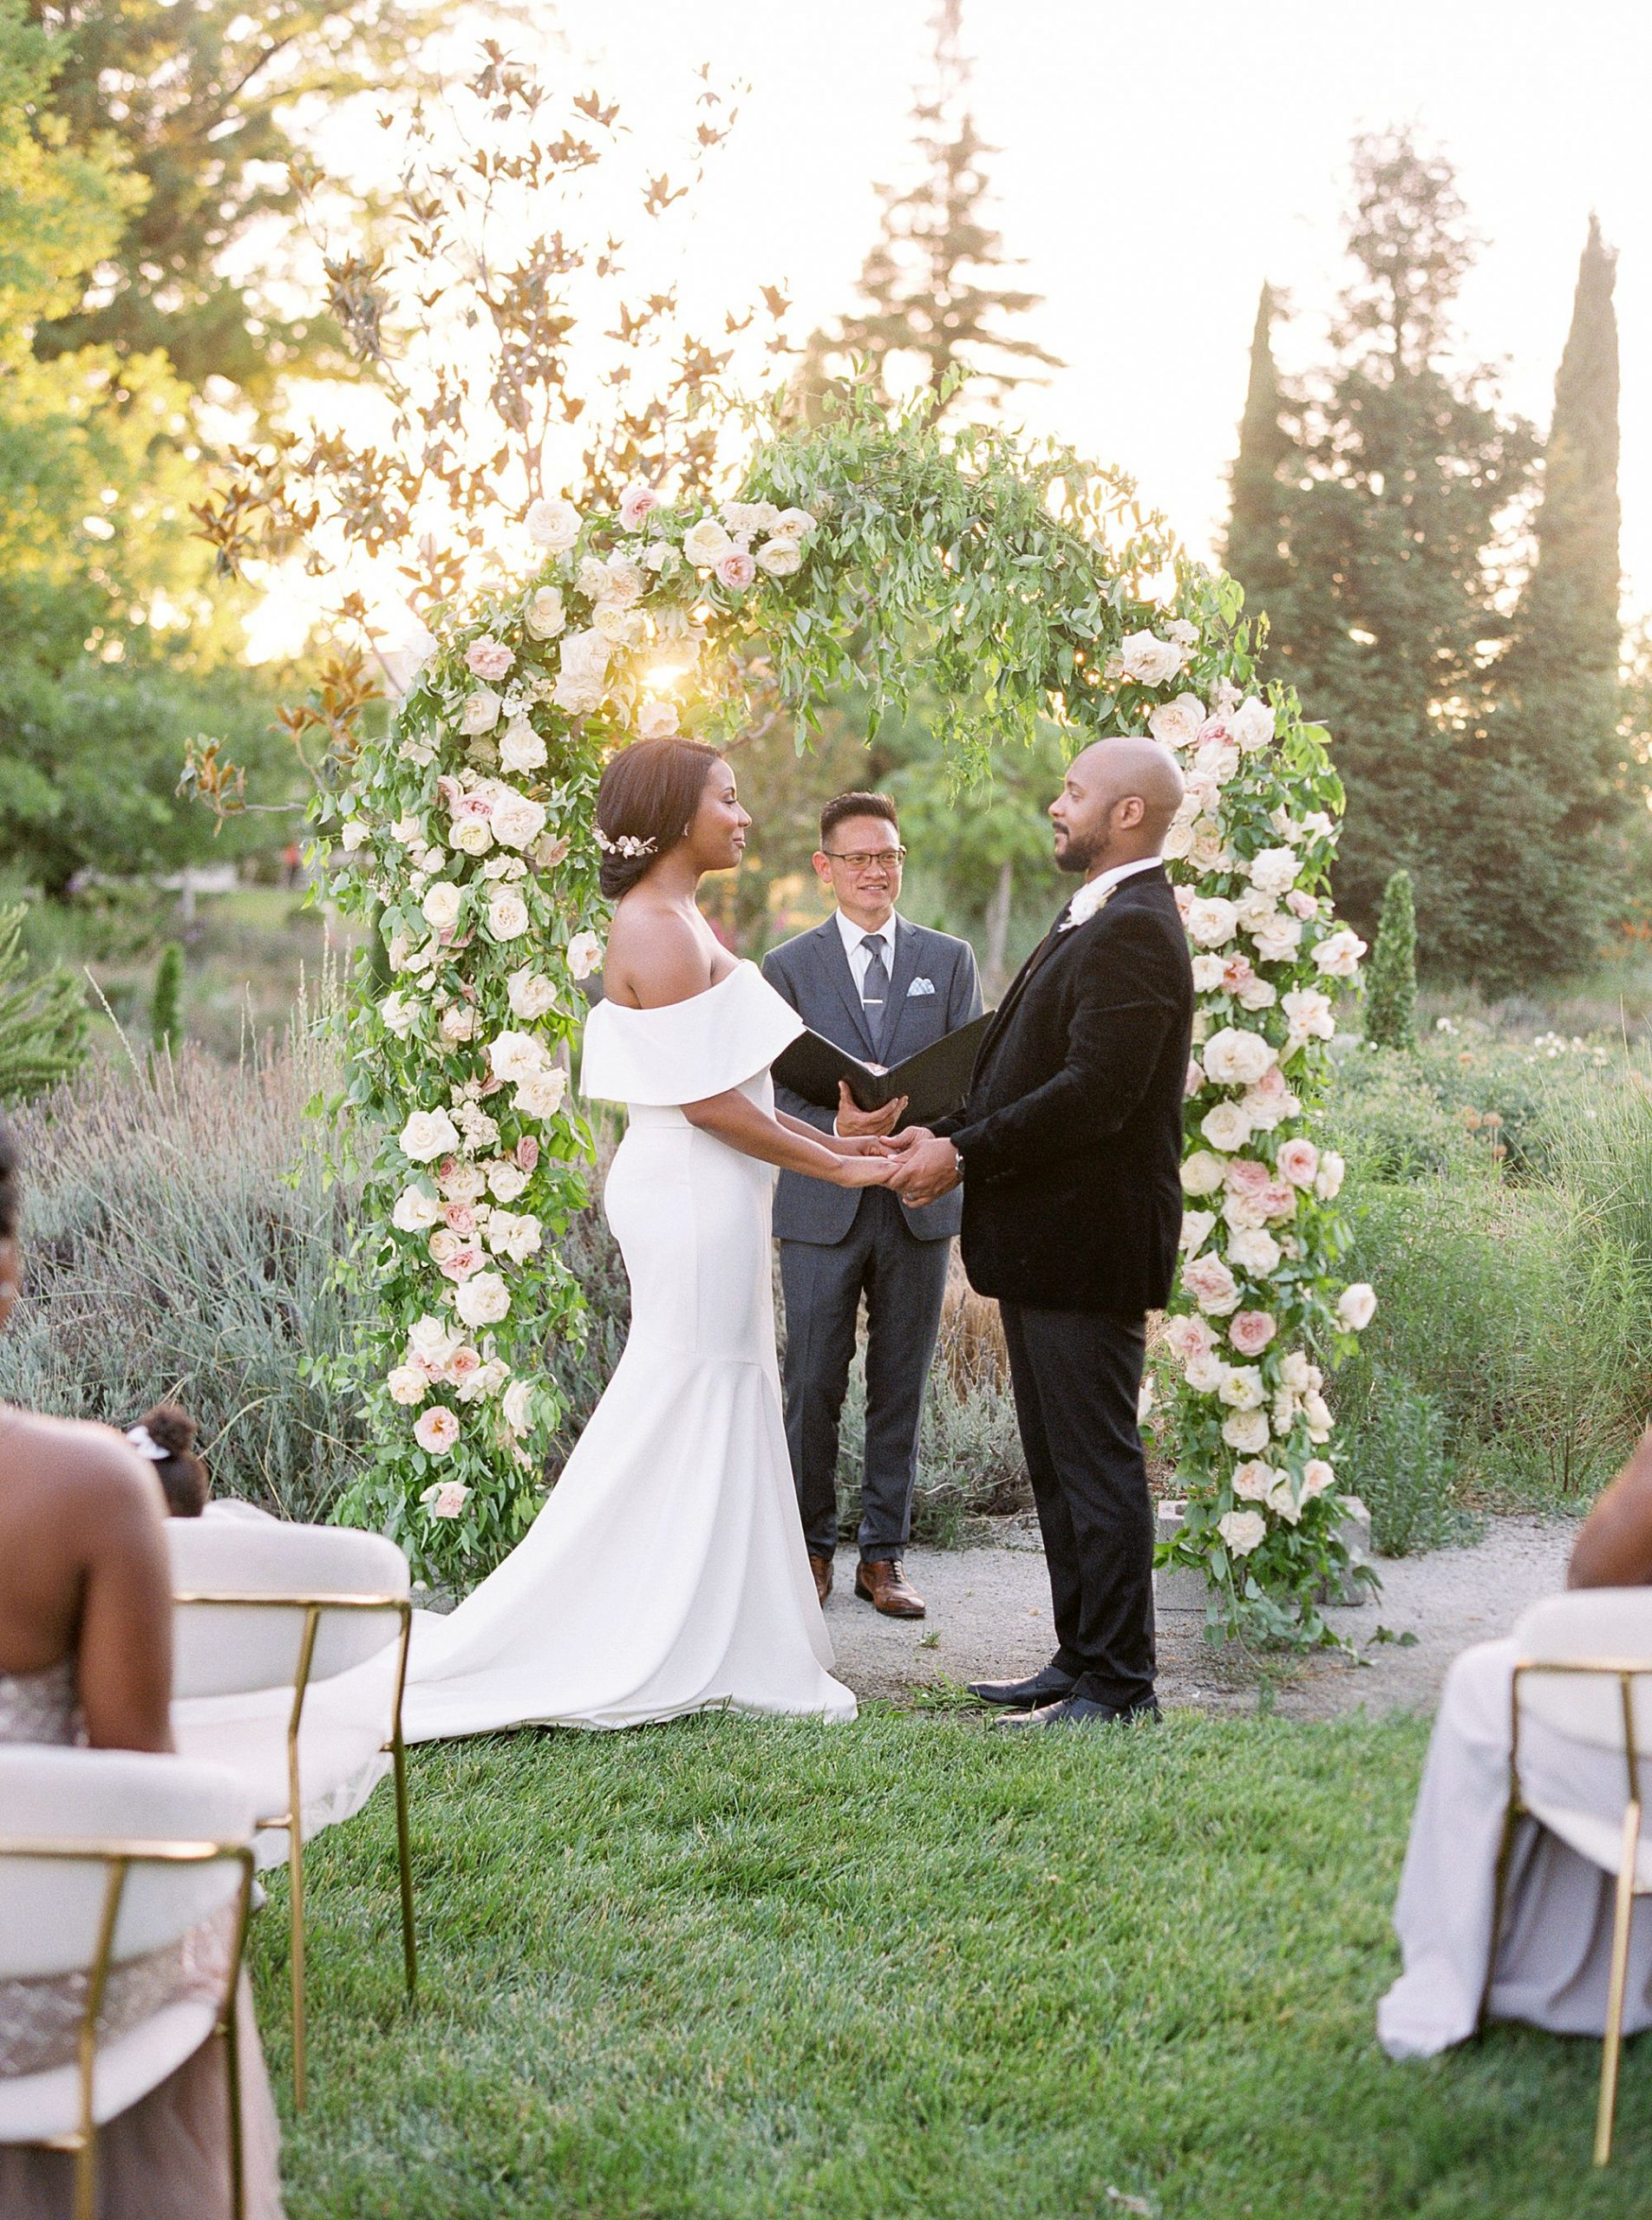 Park Winters Micro-Wedding Inspiration on Style Me Pretty - Stephanie Teague Events - Ashley Baumgartner - Park Winters Wedding - Black Tie Wedding - Micro-Wedding Sacramento Photographer_0038.jpg